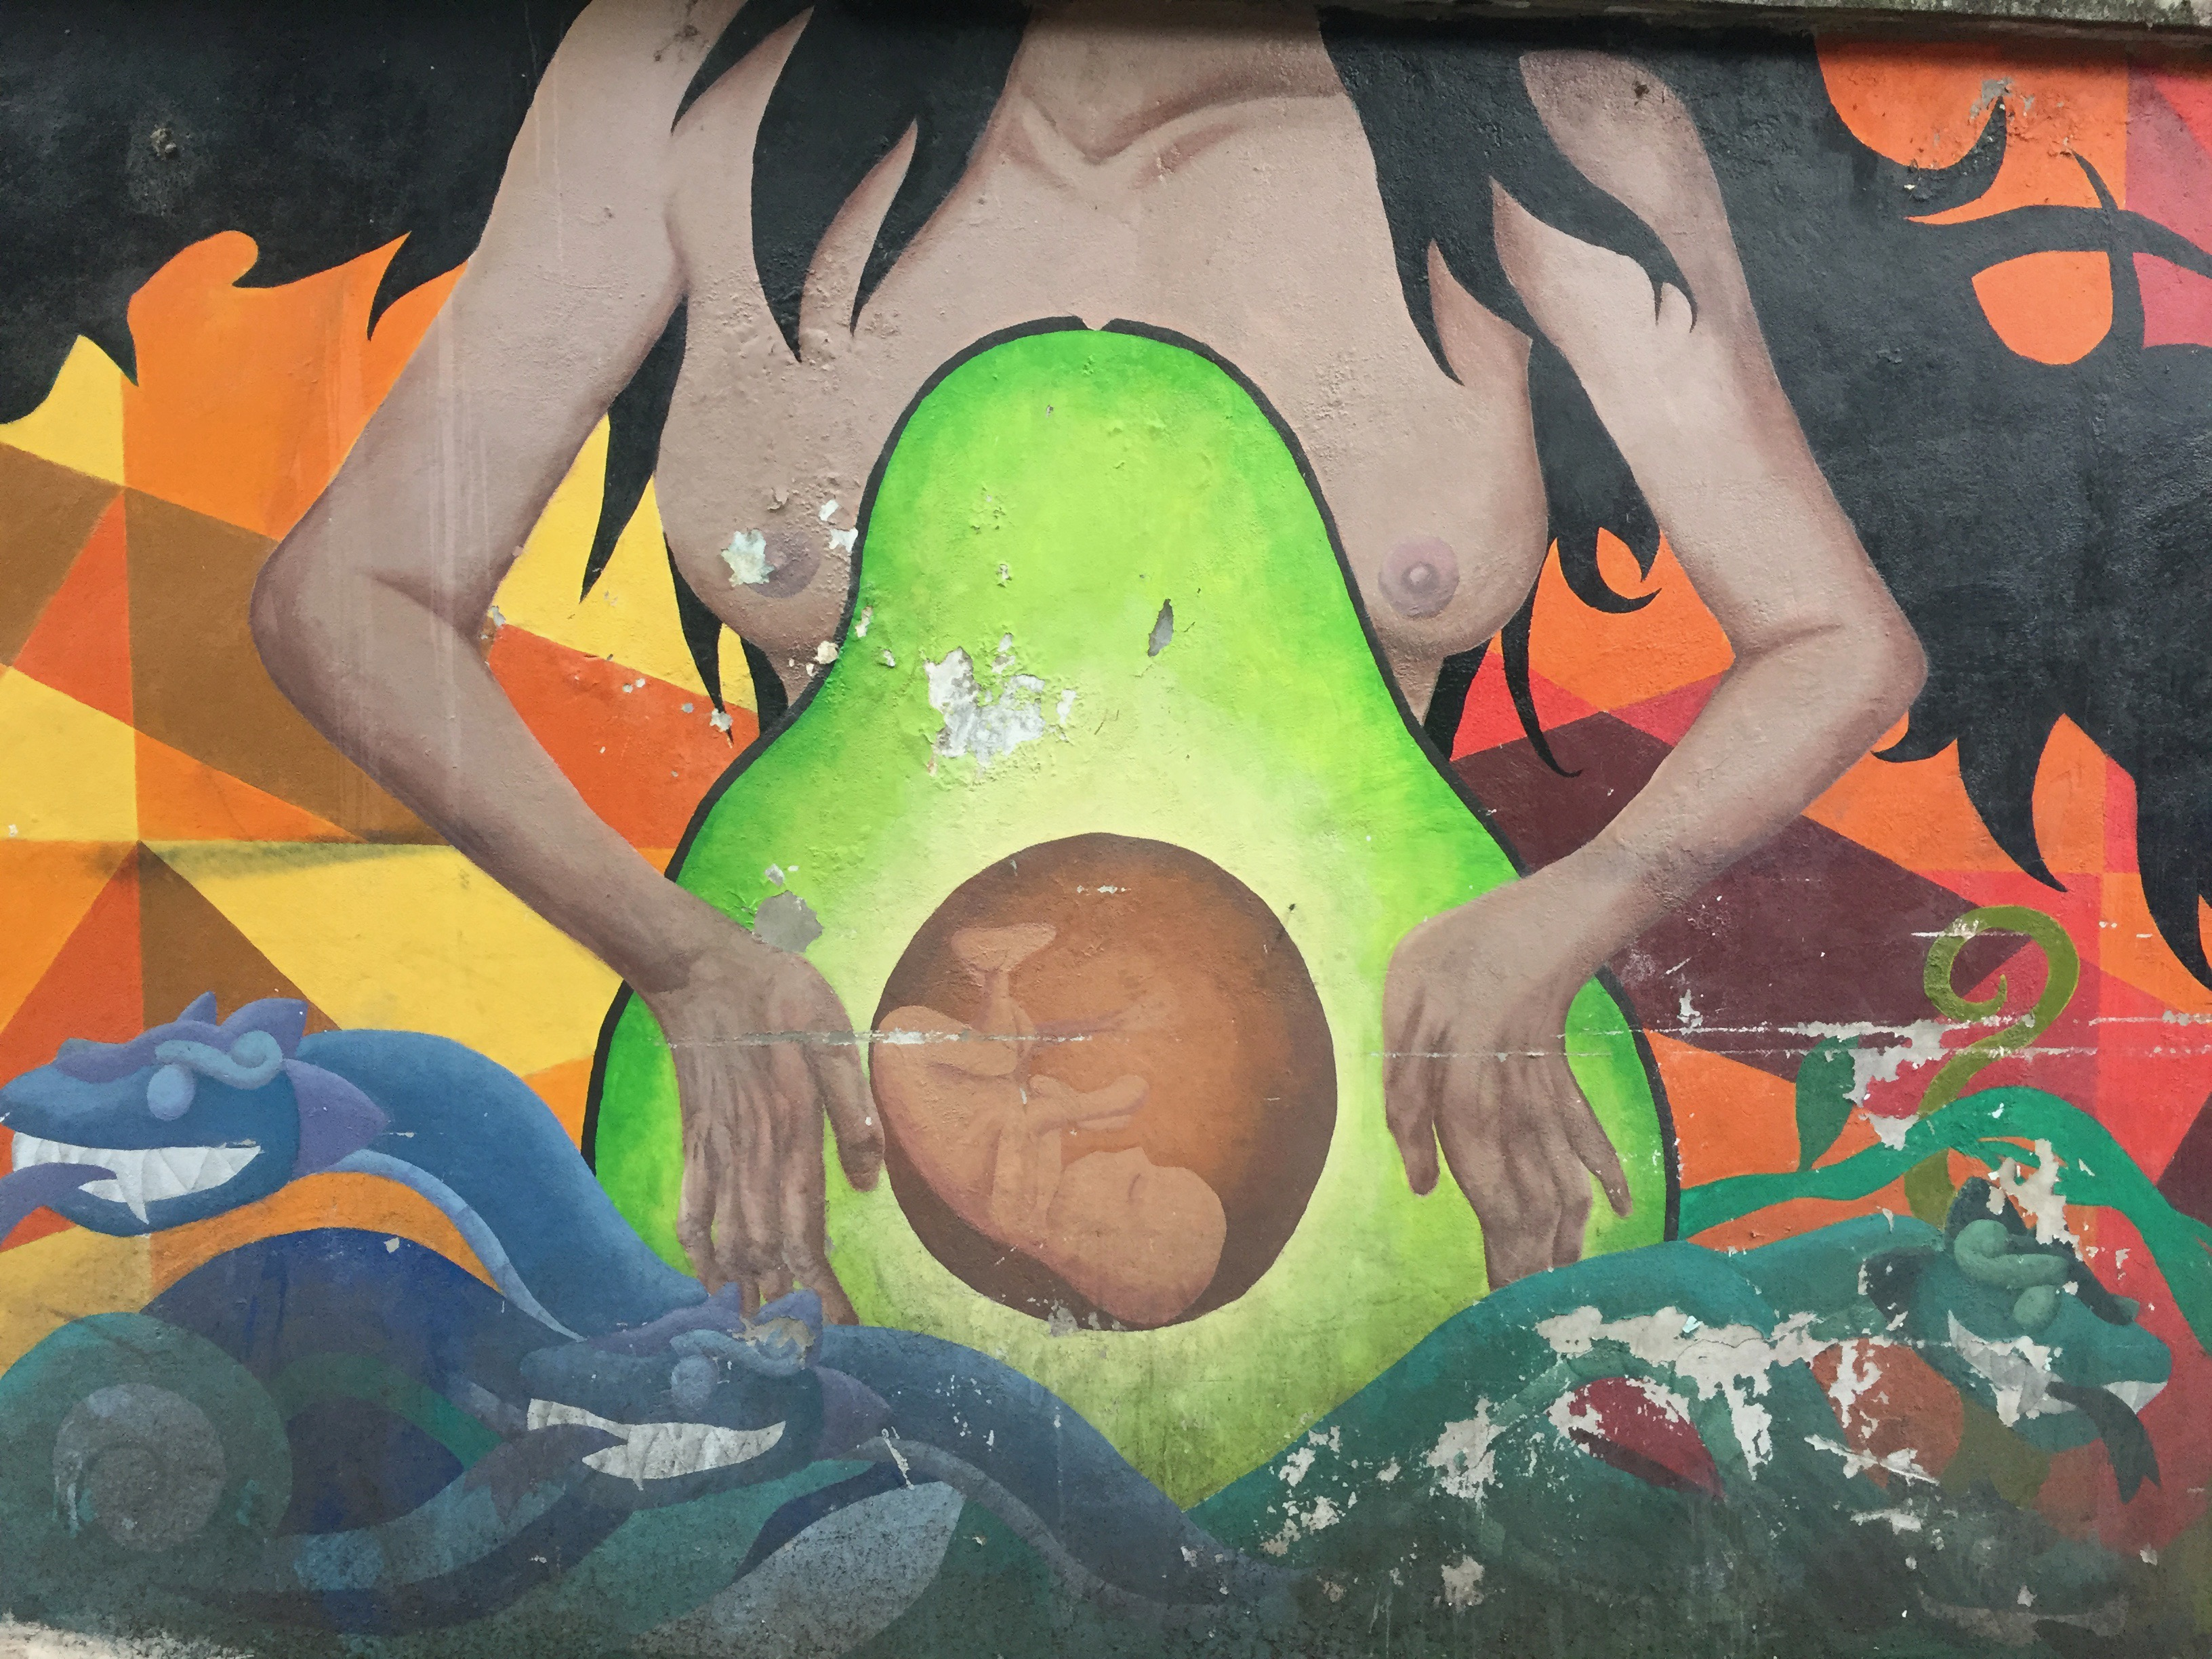 street art of pregnant woman with avocado